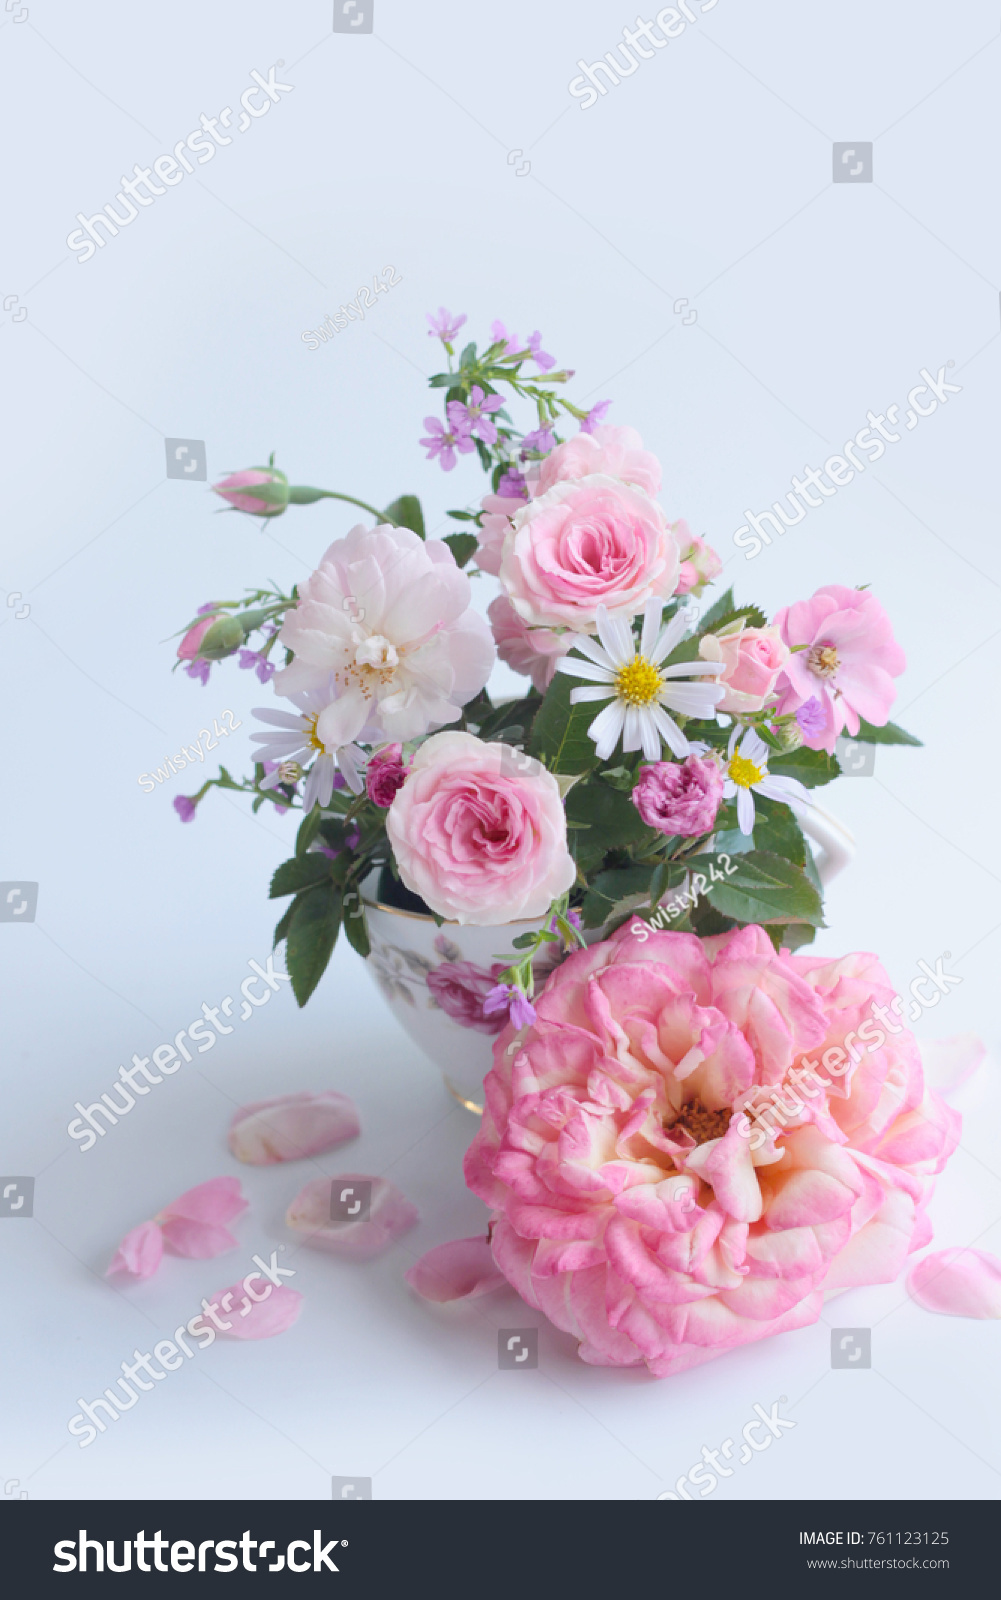 Beautiful Rose Flower Bouquet Decoration Card Flower Stock Photo ...